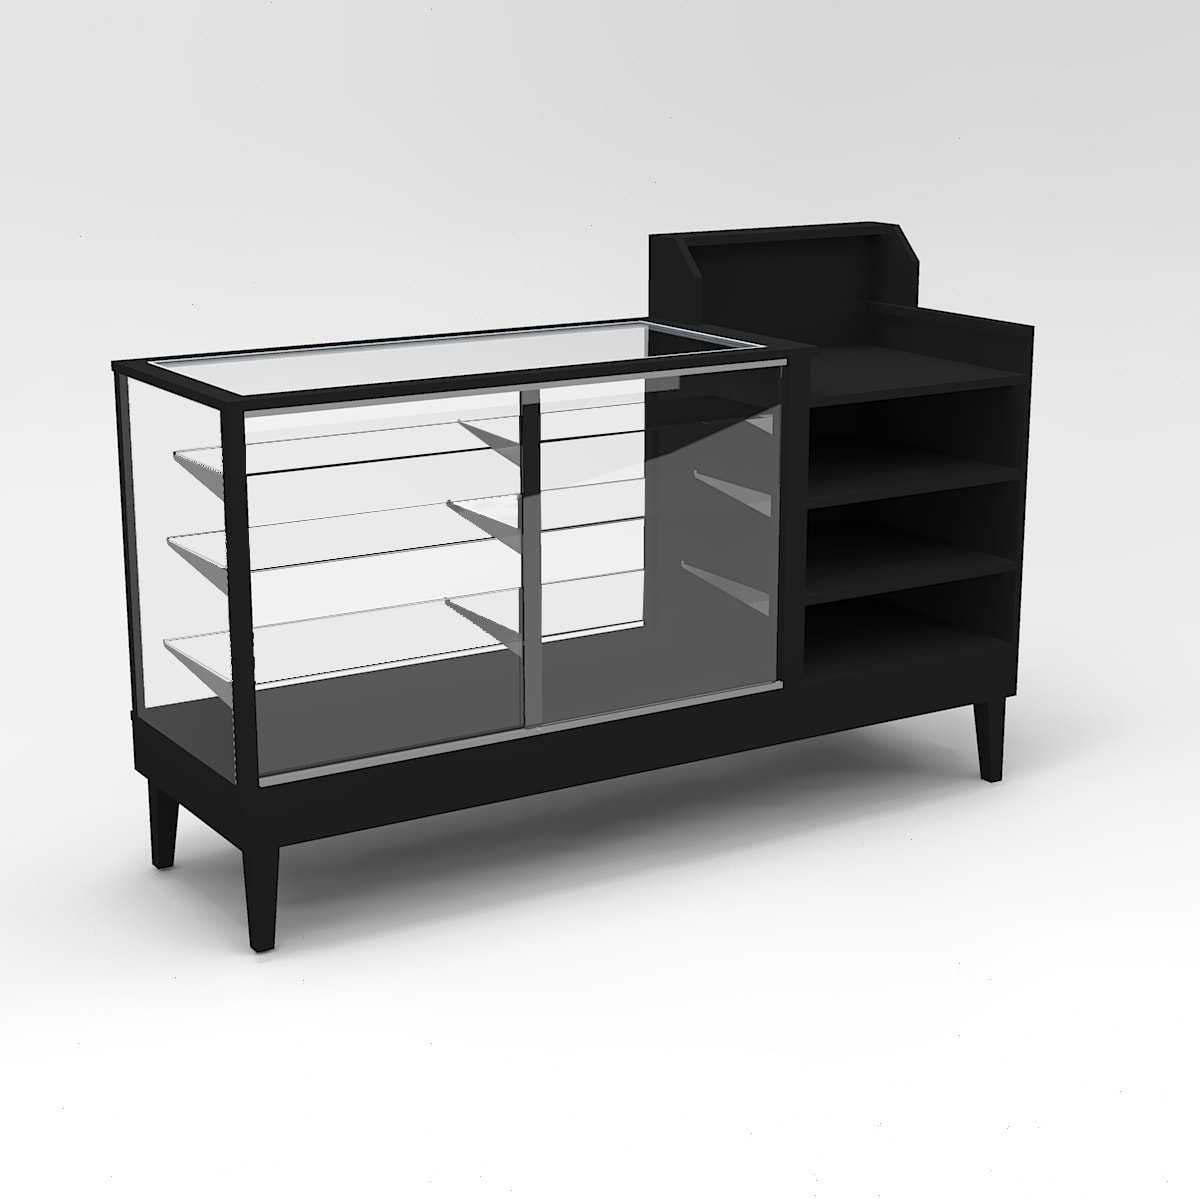 72 Inch Extra Vision Tapered Leg Cash Wrap Display Case To Purchase